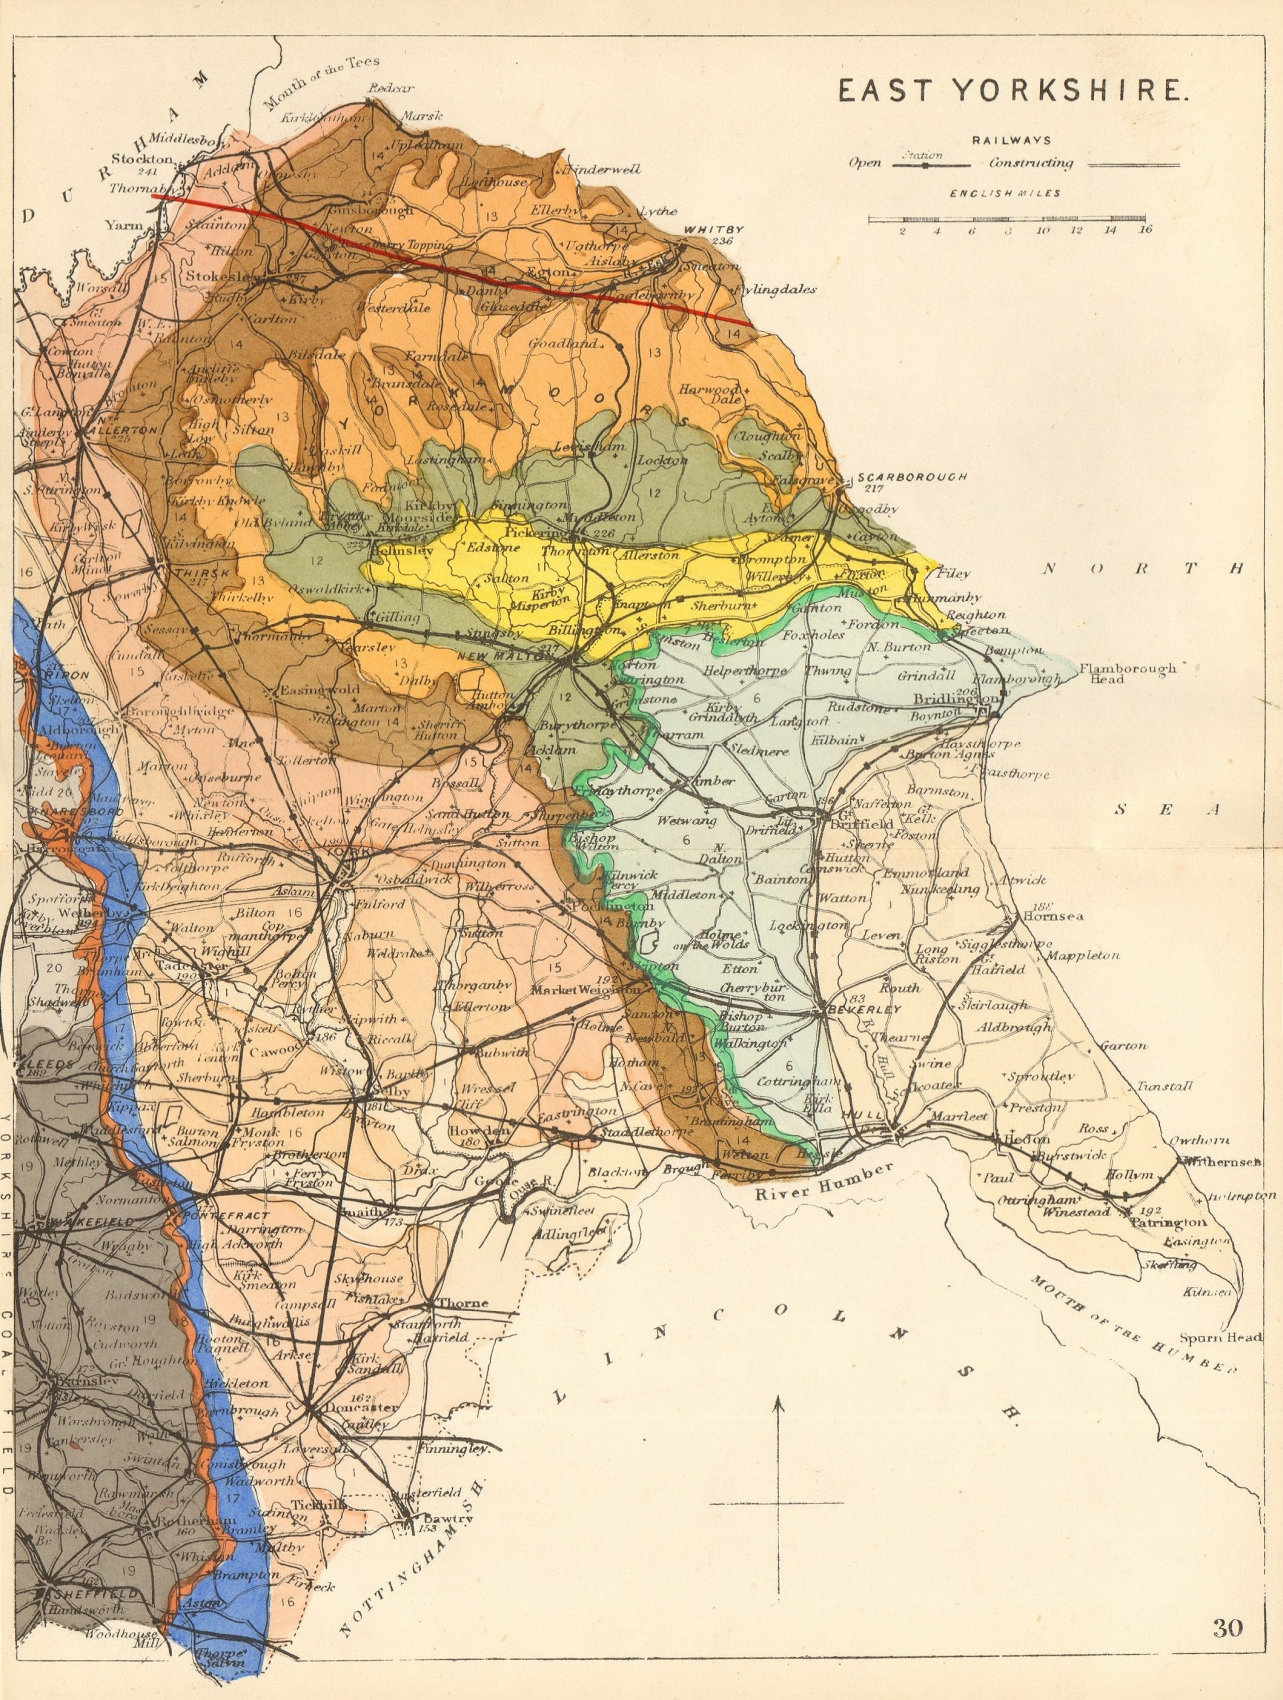 EAST YORKSHIRE antique geological county map by James Reynolds 1864